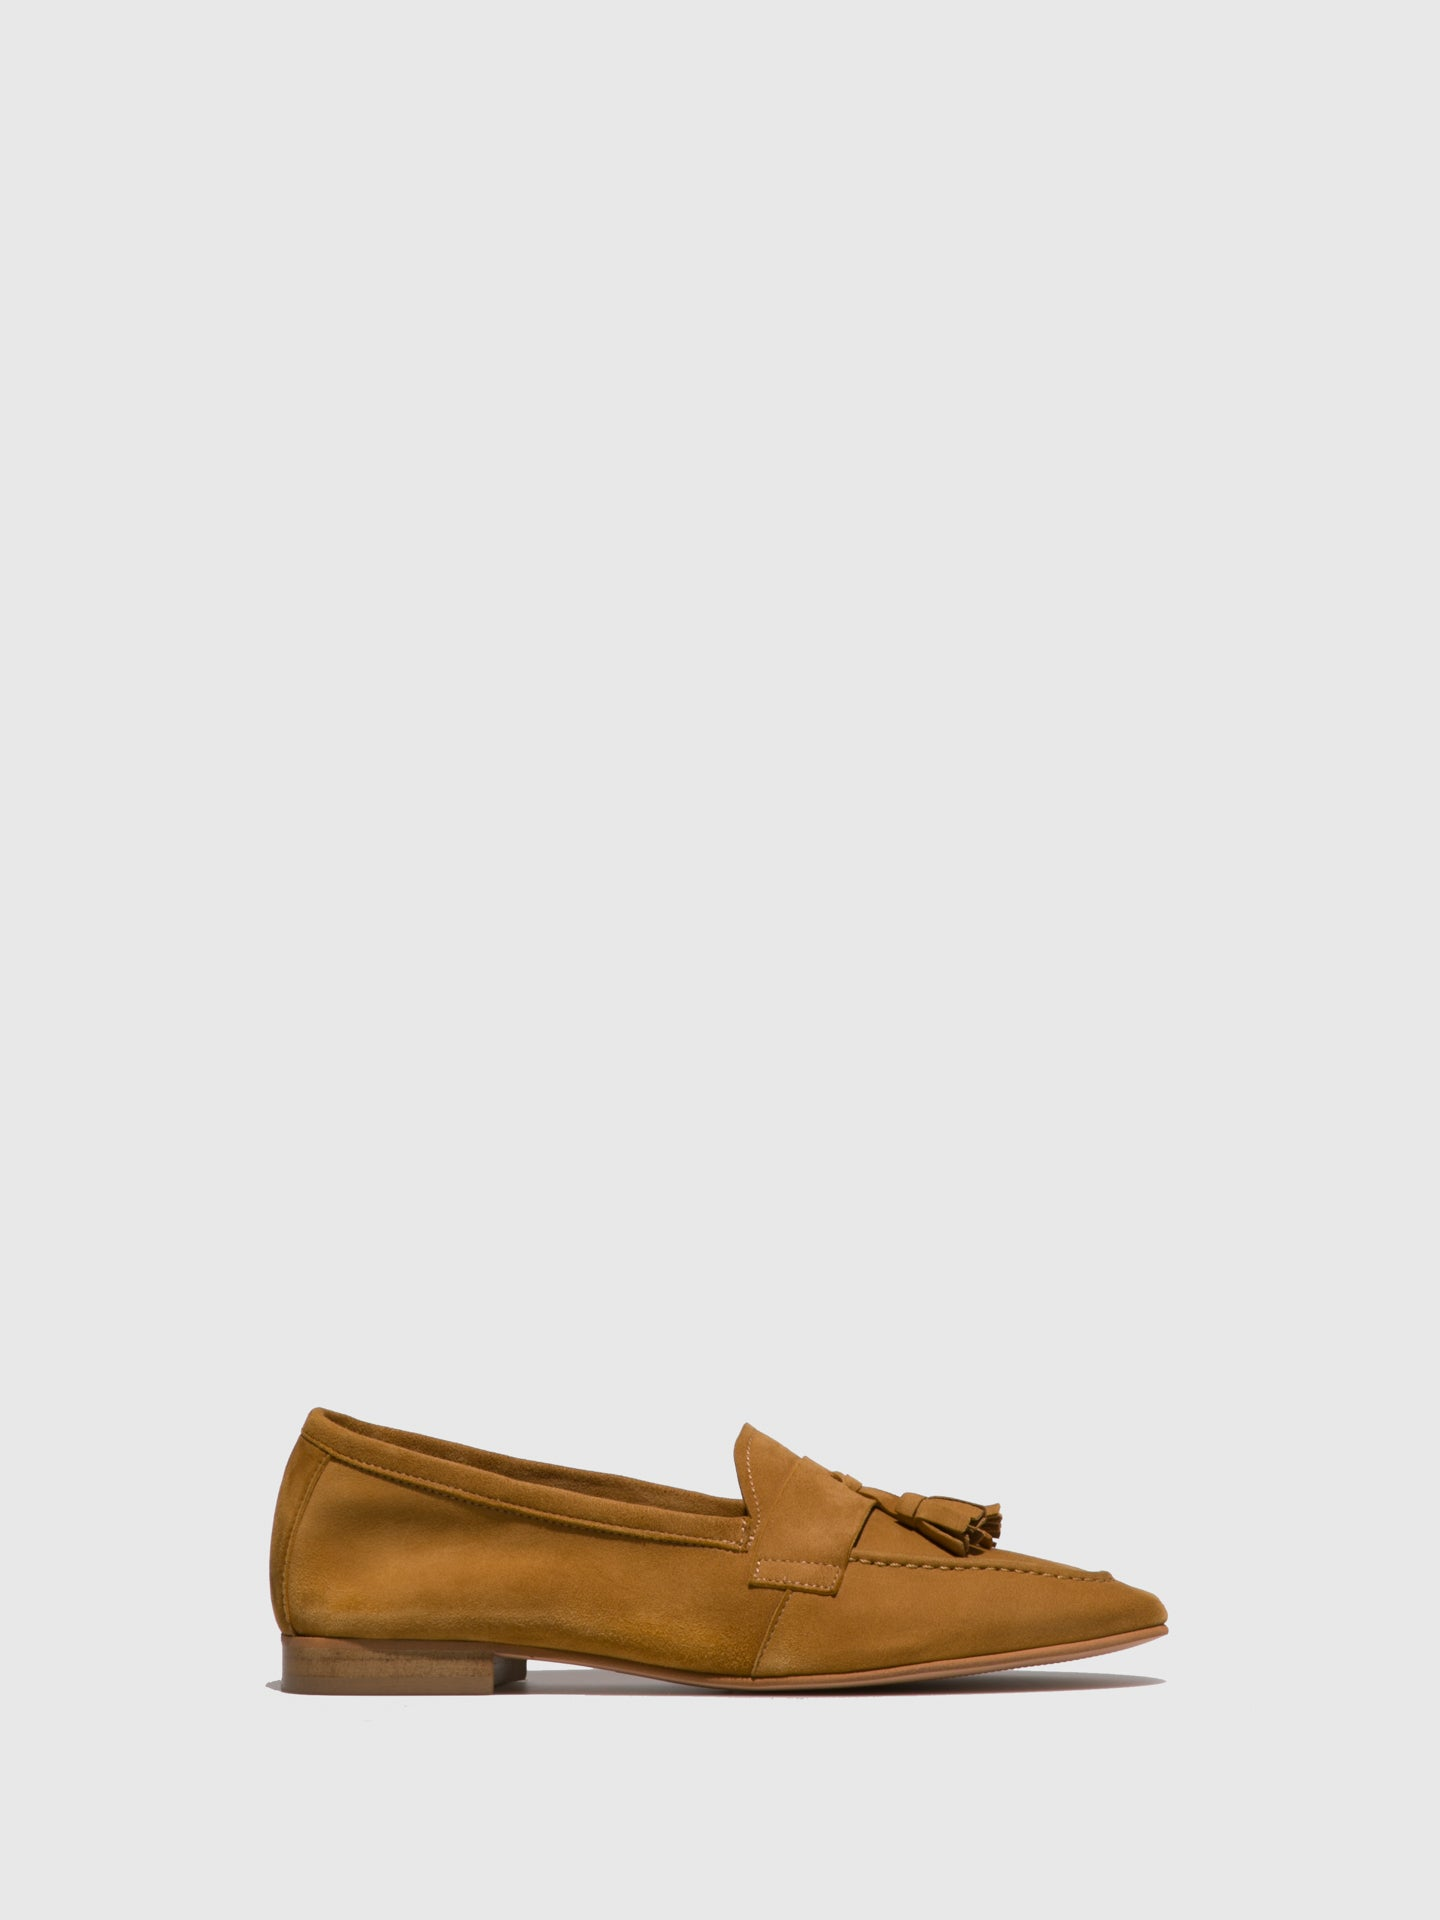 Foreva Brown Flat Shoes